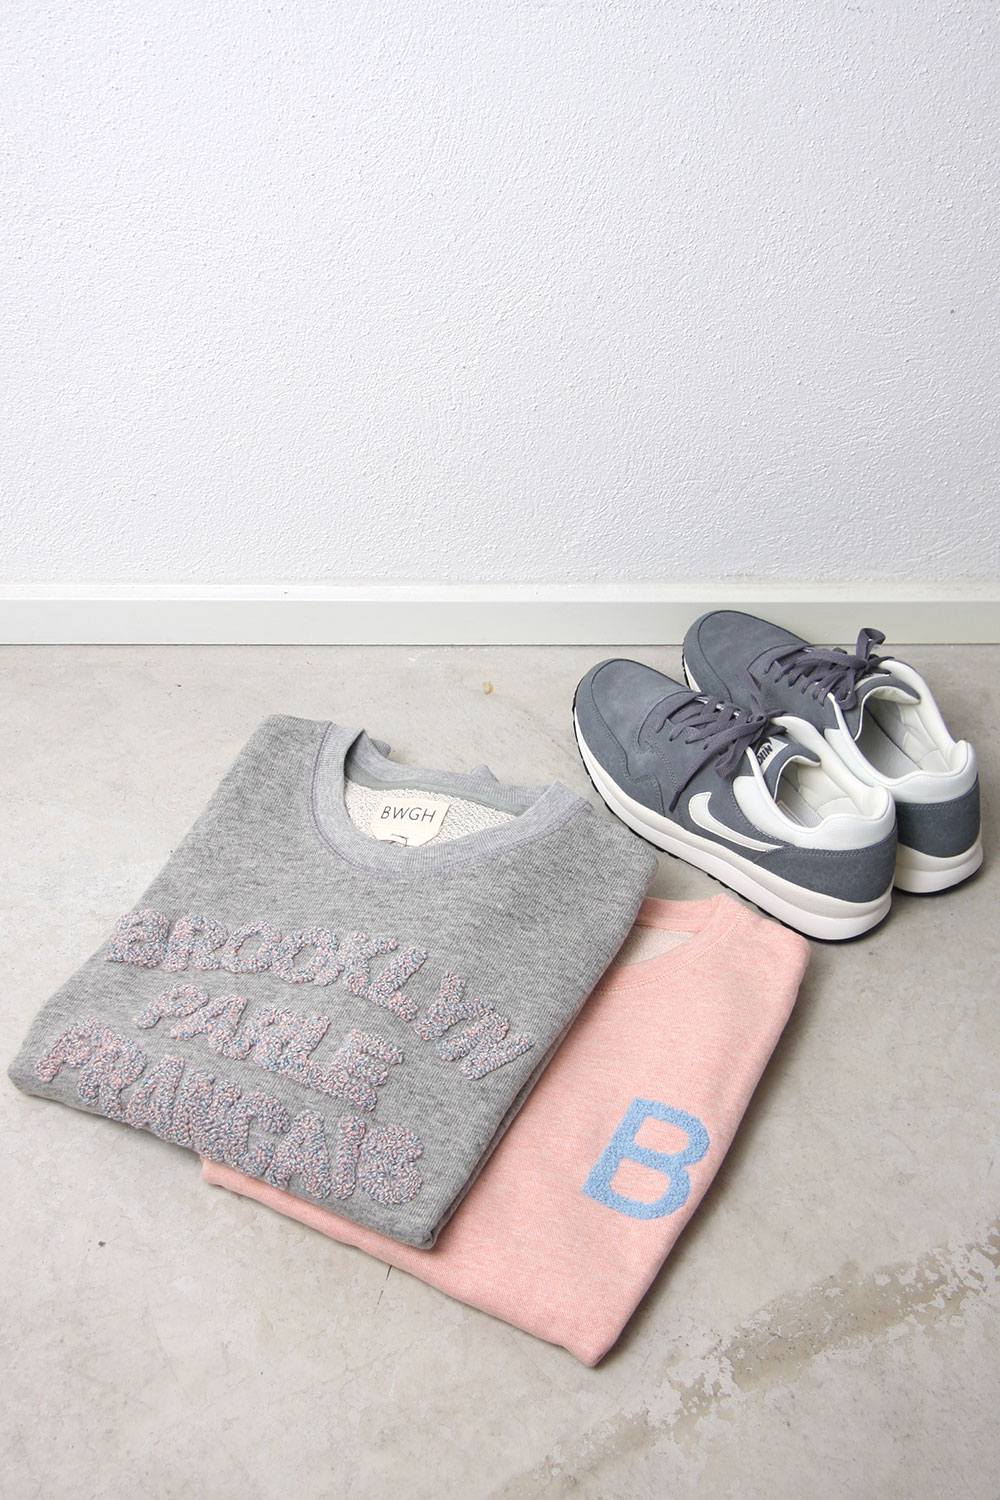 BWGH Spring Summer 2014 Collection 8